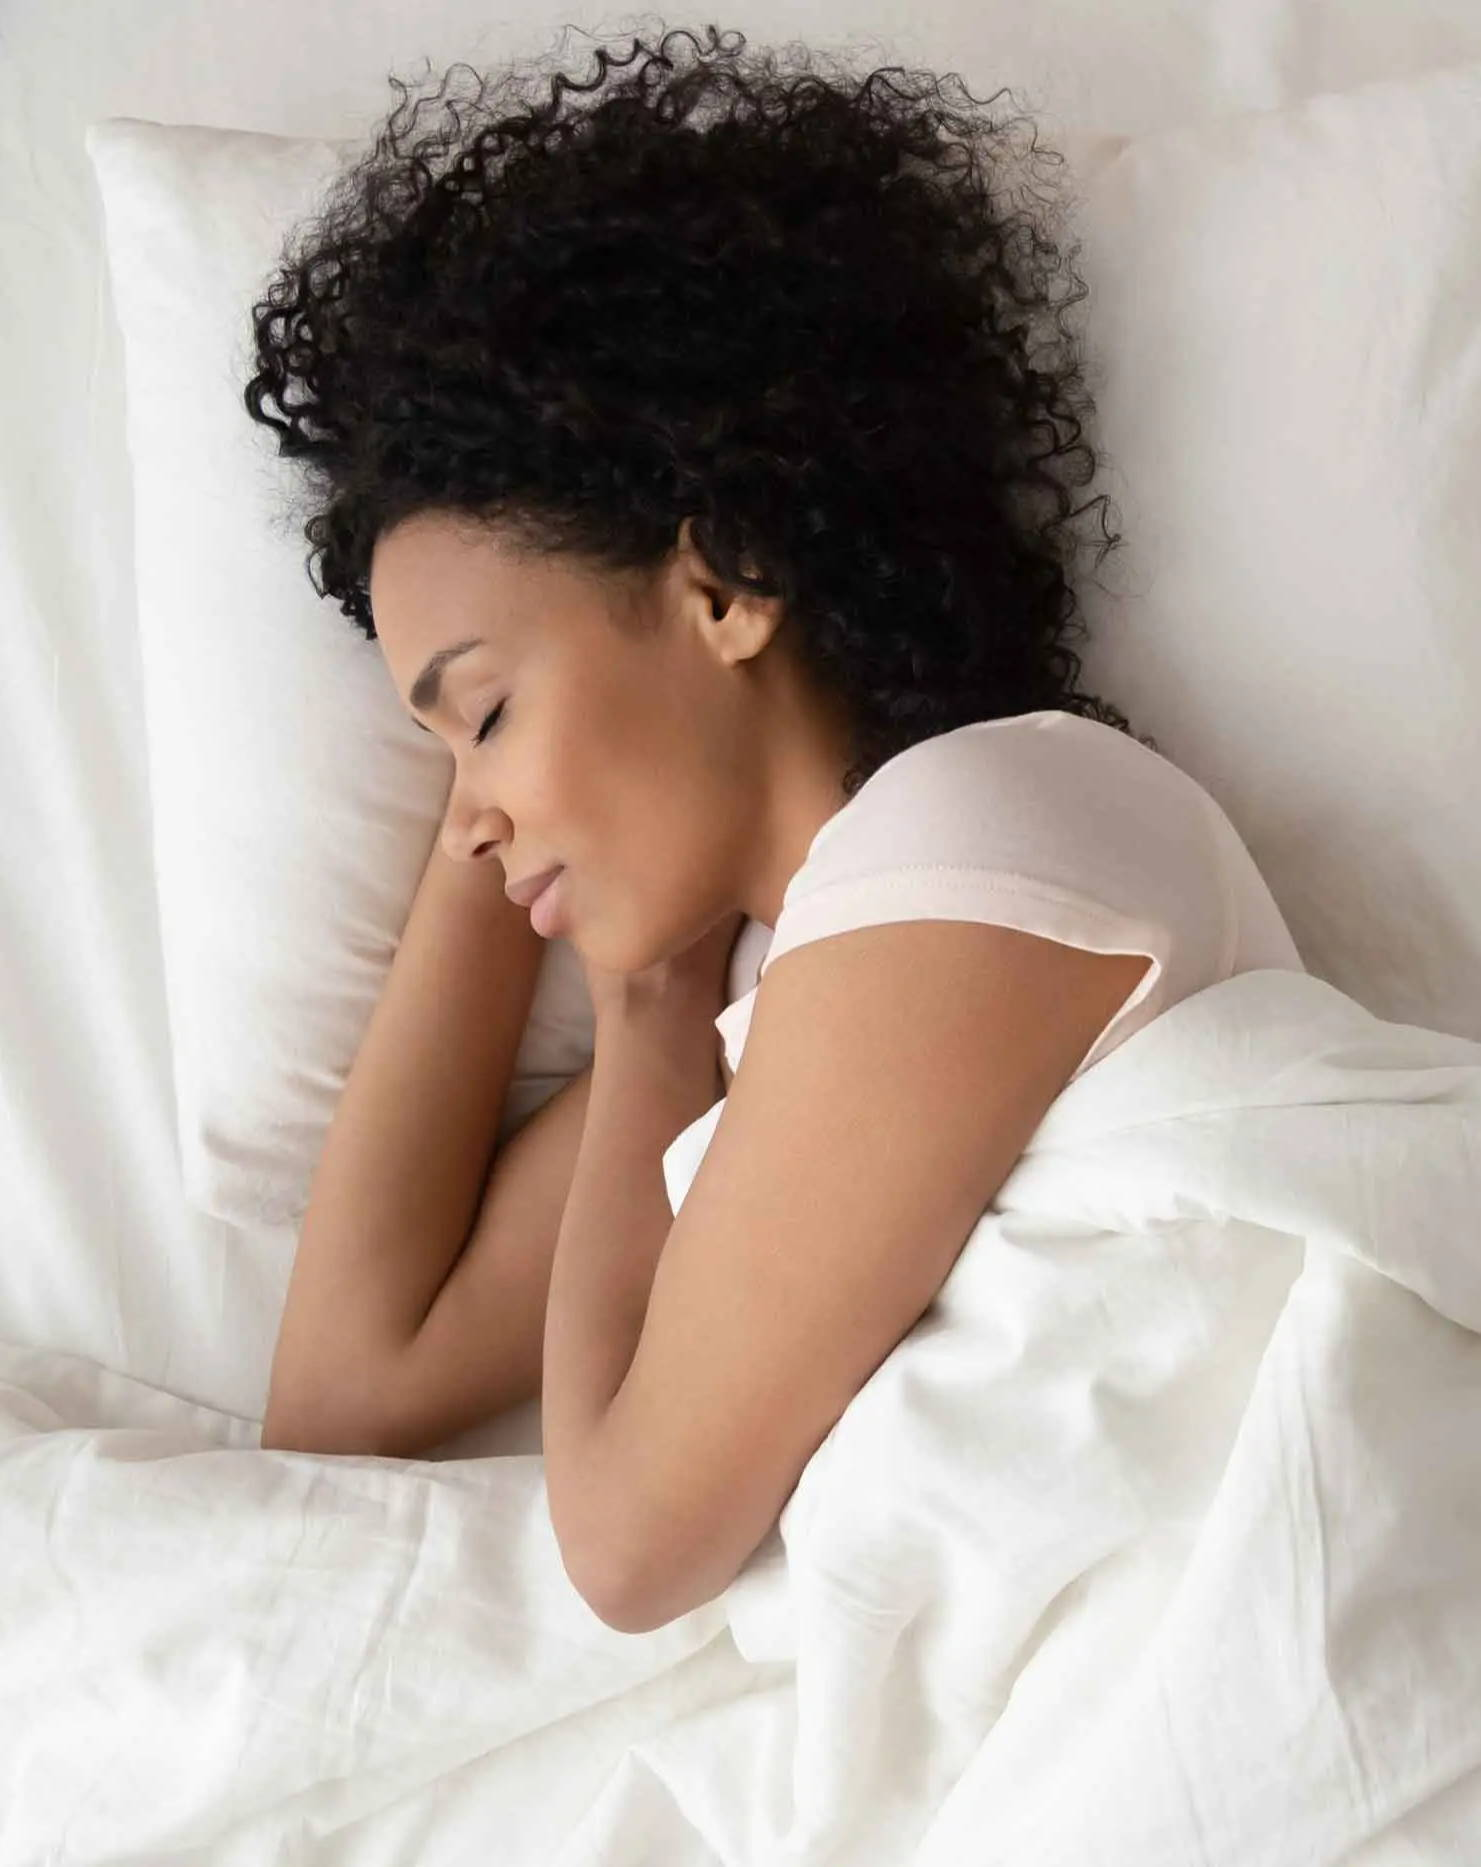 6 Ways That A Good Night's Sleep Will Make Your Day Better